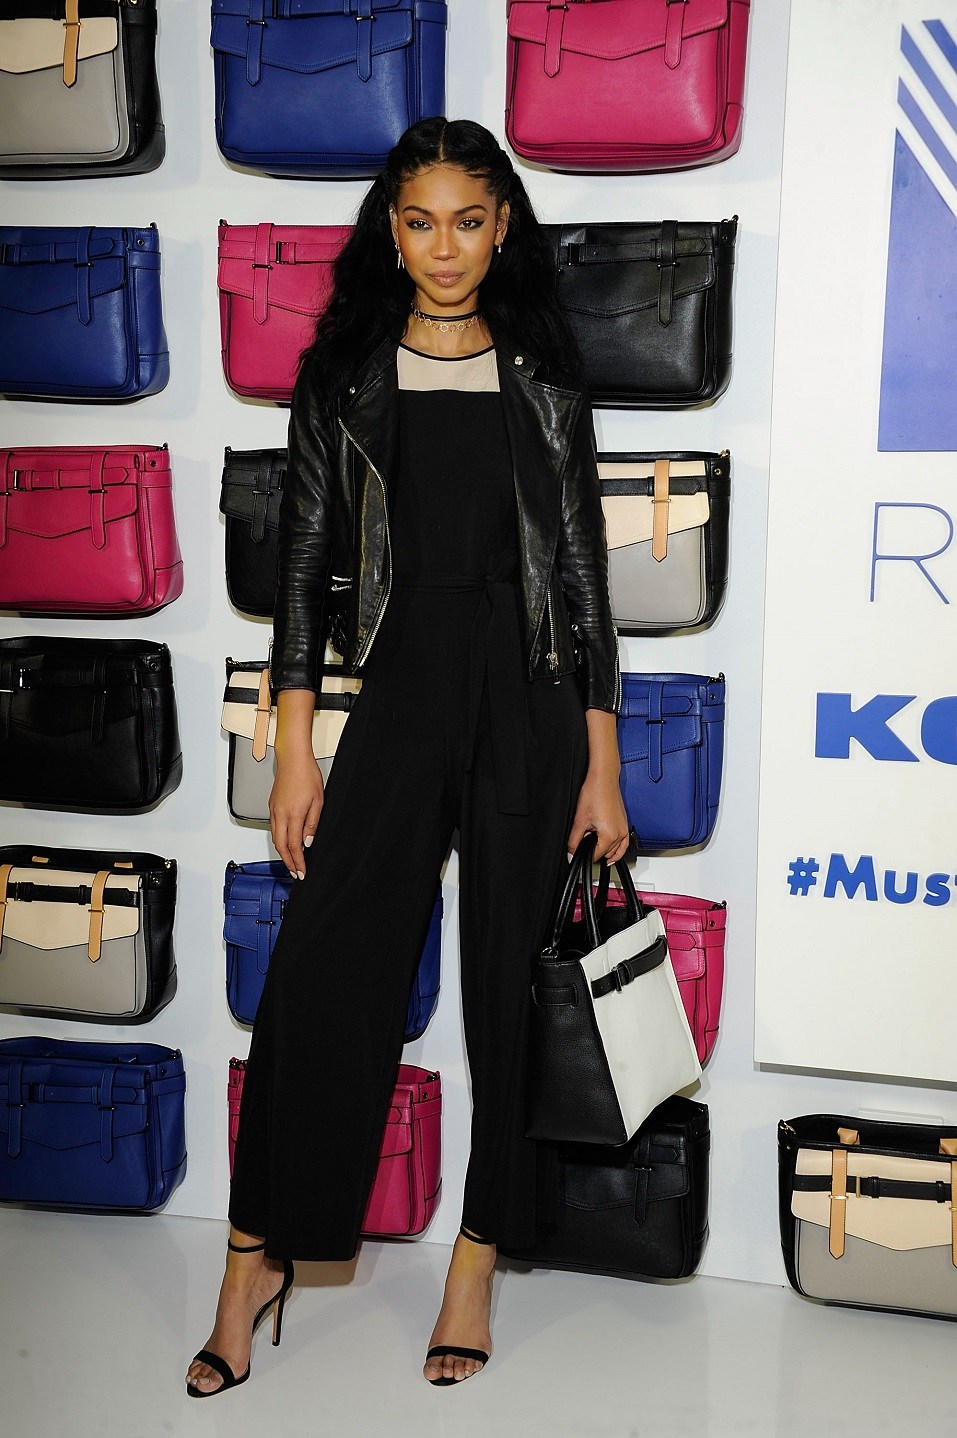 Chanel Iman attends REED x Kohl's Collection Launch Dinner